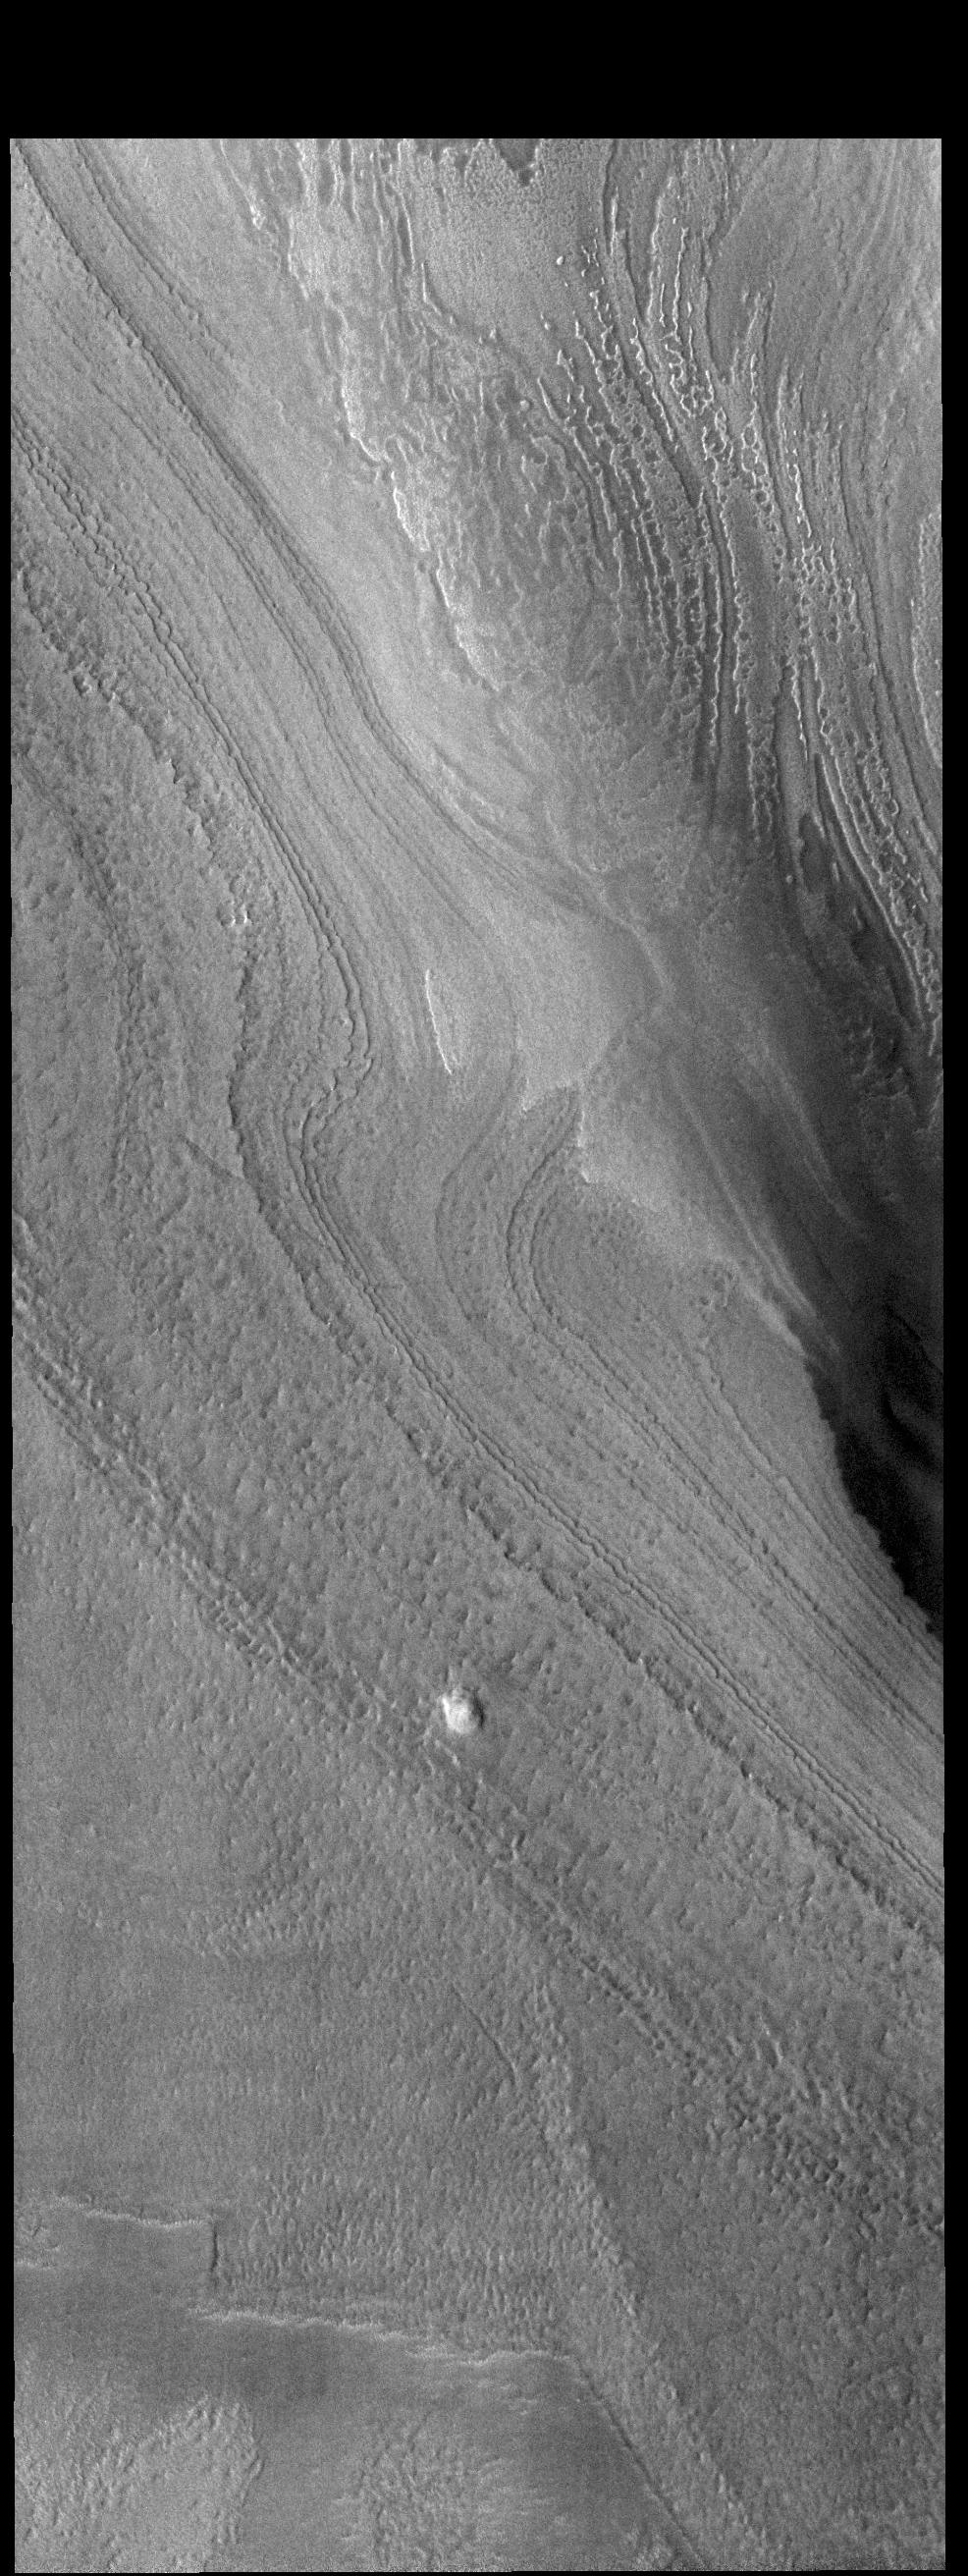 This image from NASAs Mars Odyssey shows a small part of the south polar cap. The layers record the seasonal deposition of dust and ice over the course of 1000s of years.